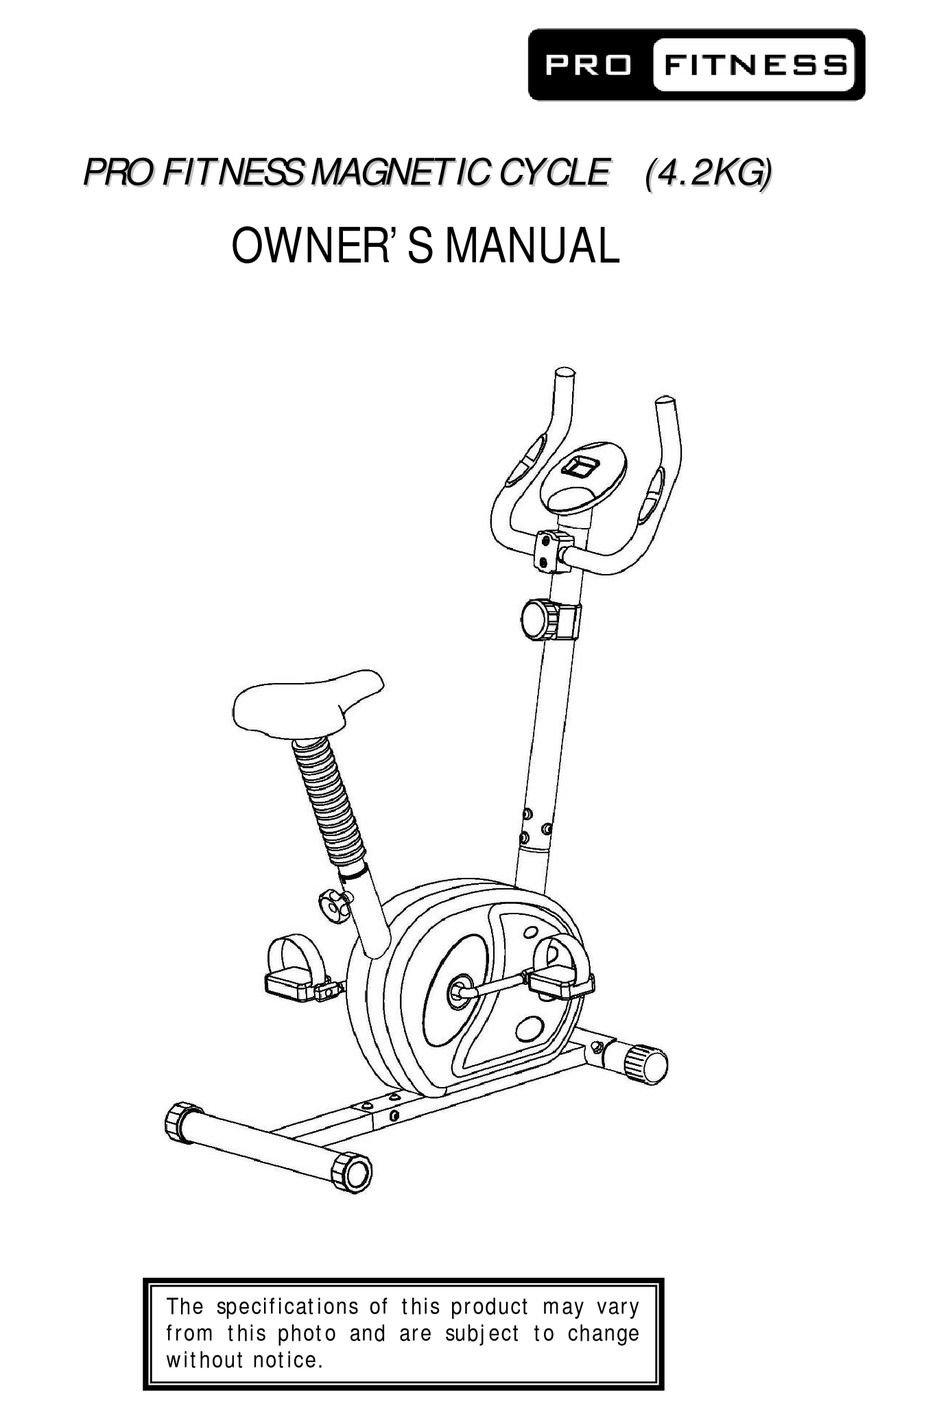 PRO FITNESS MAGNETIC CYCLE OWNER'S MANUAL Pdf Download